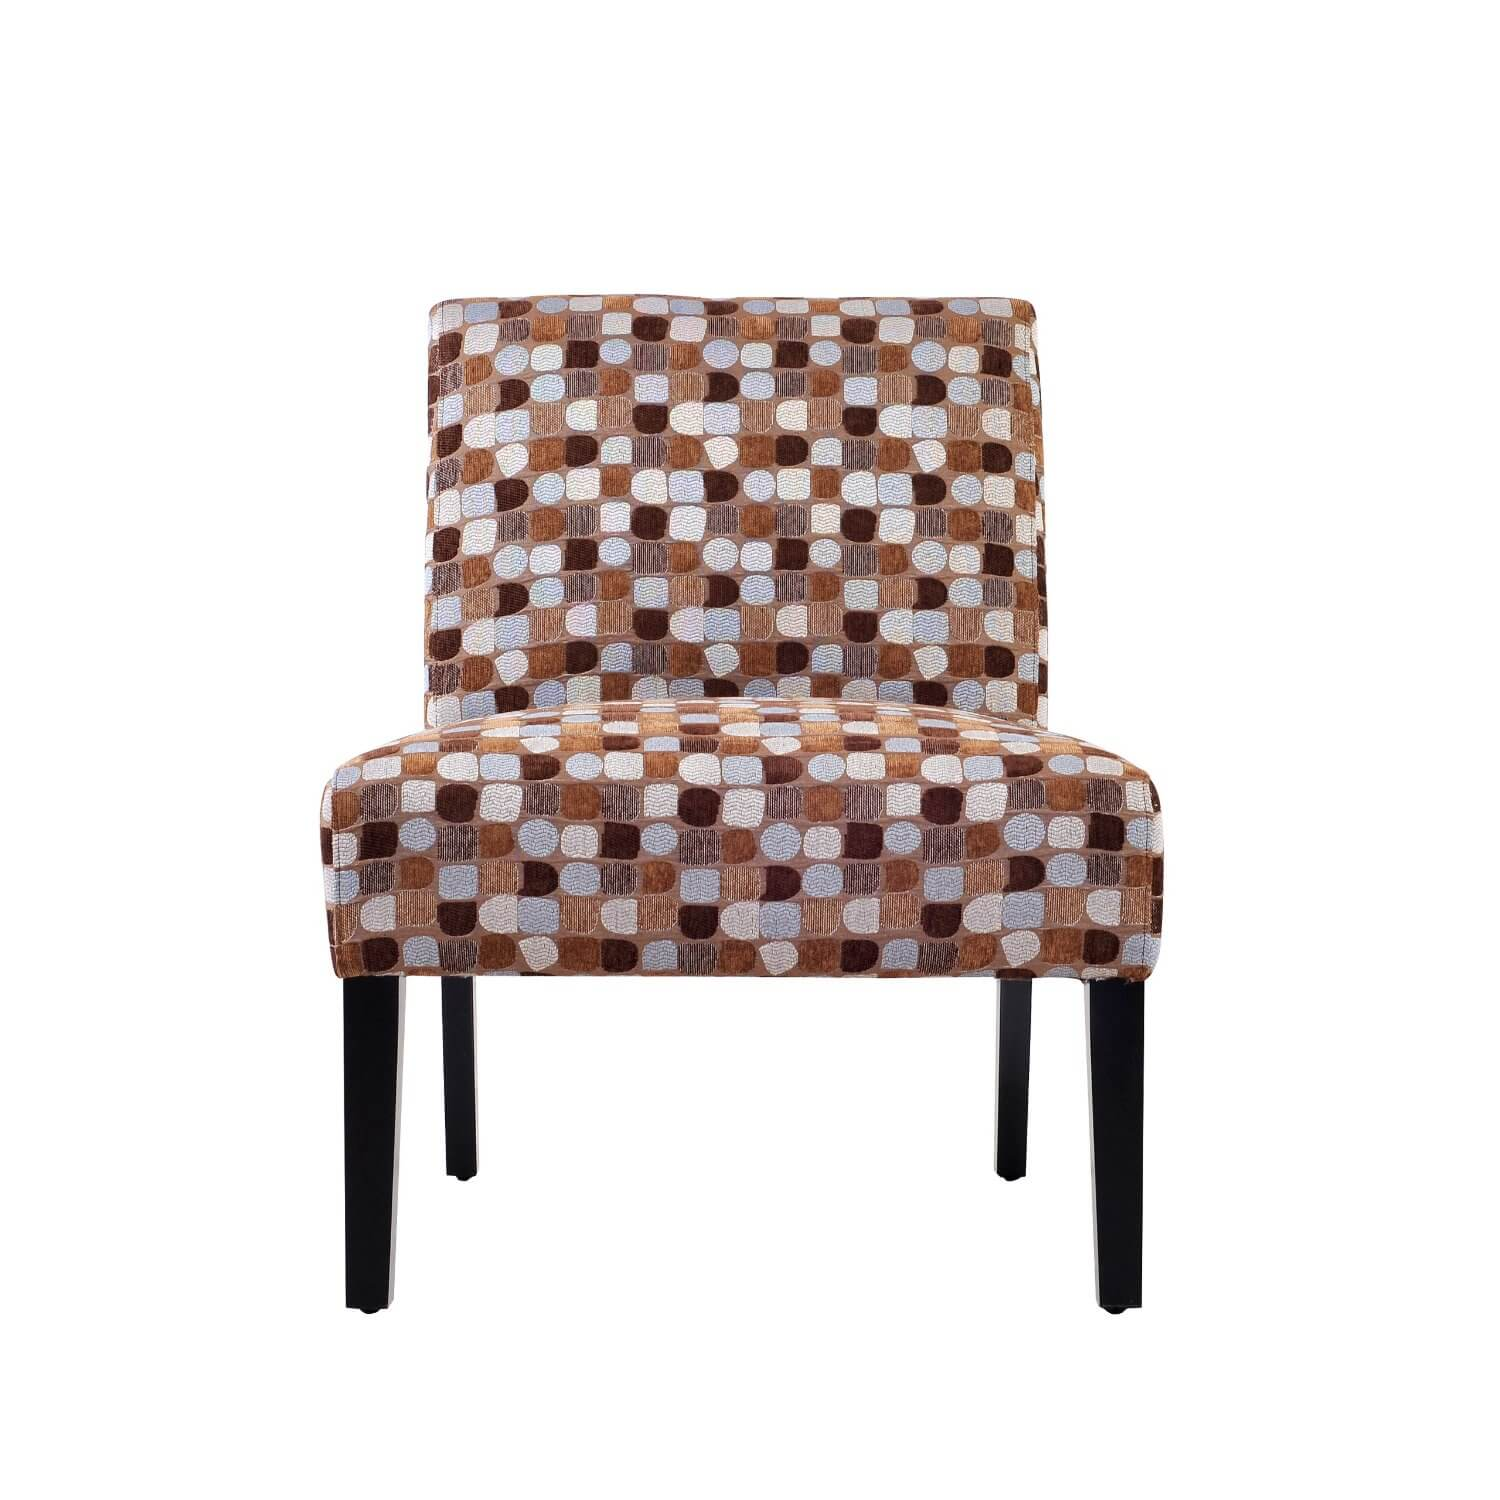 This Chair Definitely Lives Up To Its Categorization As An Accent